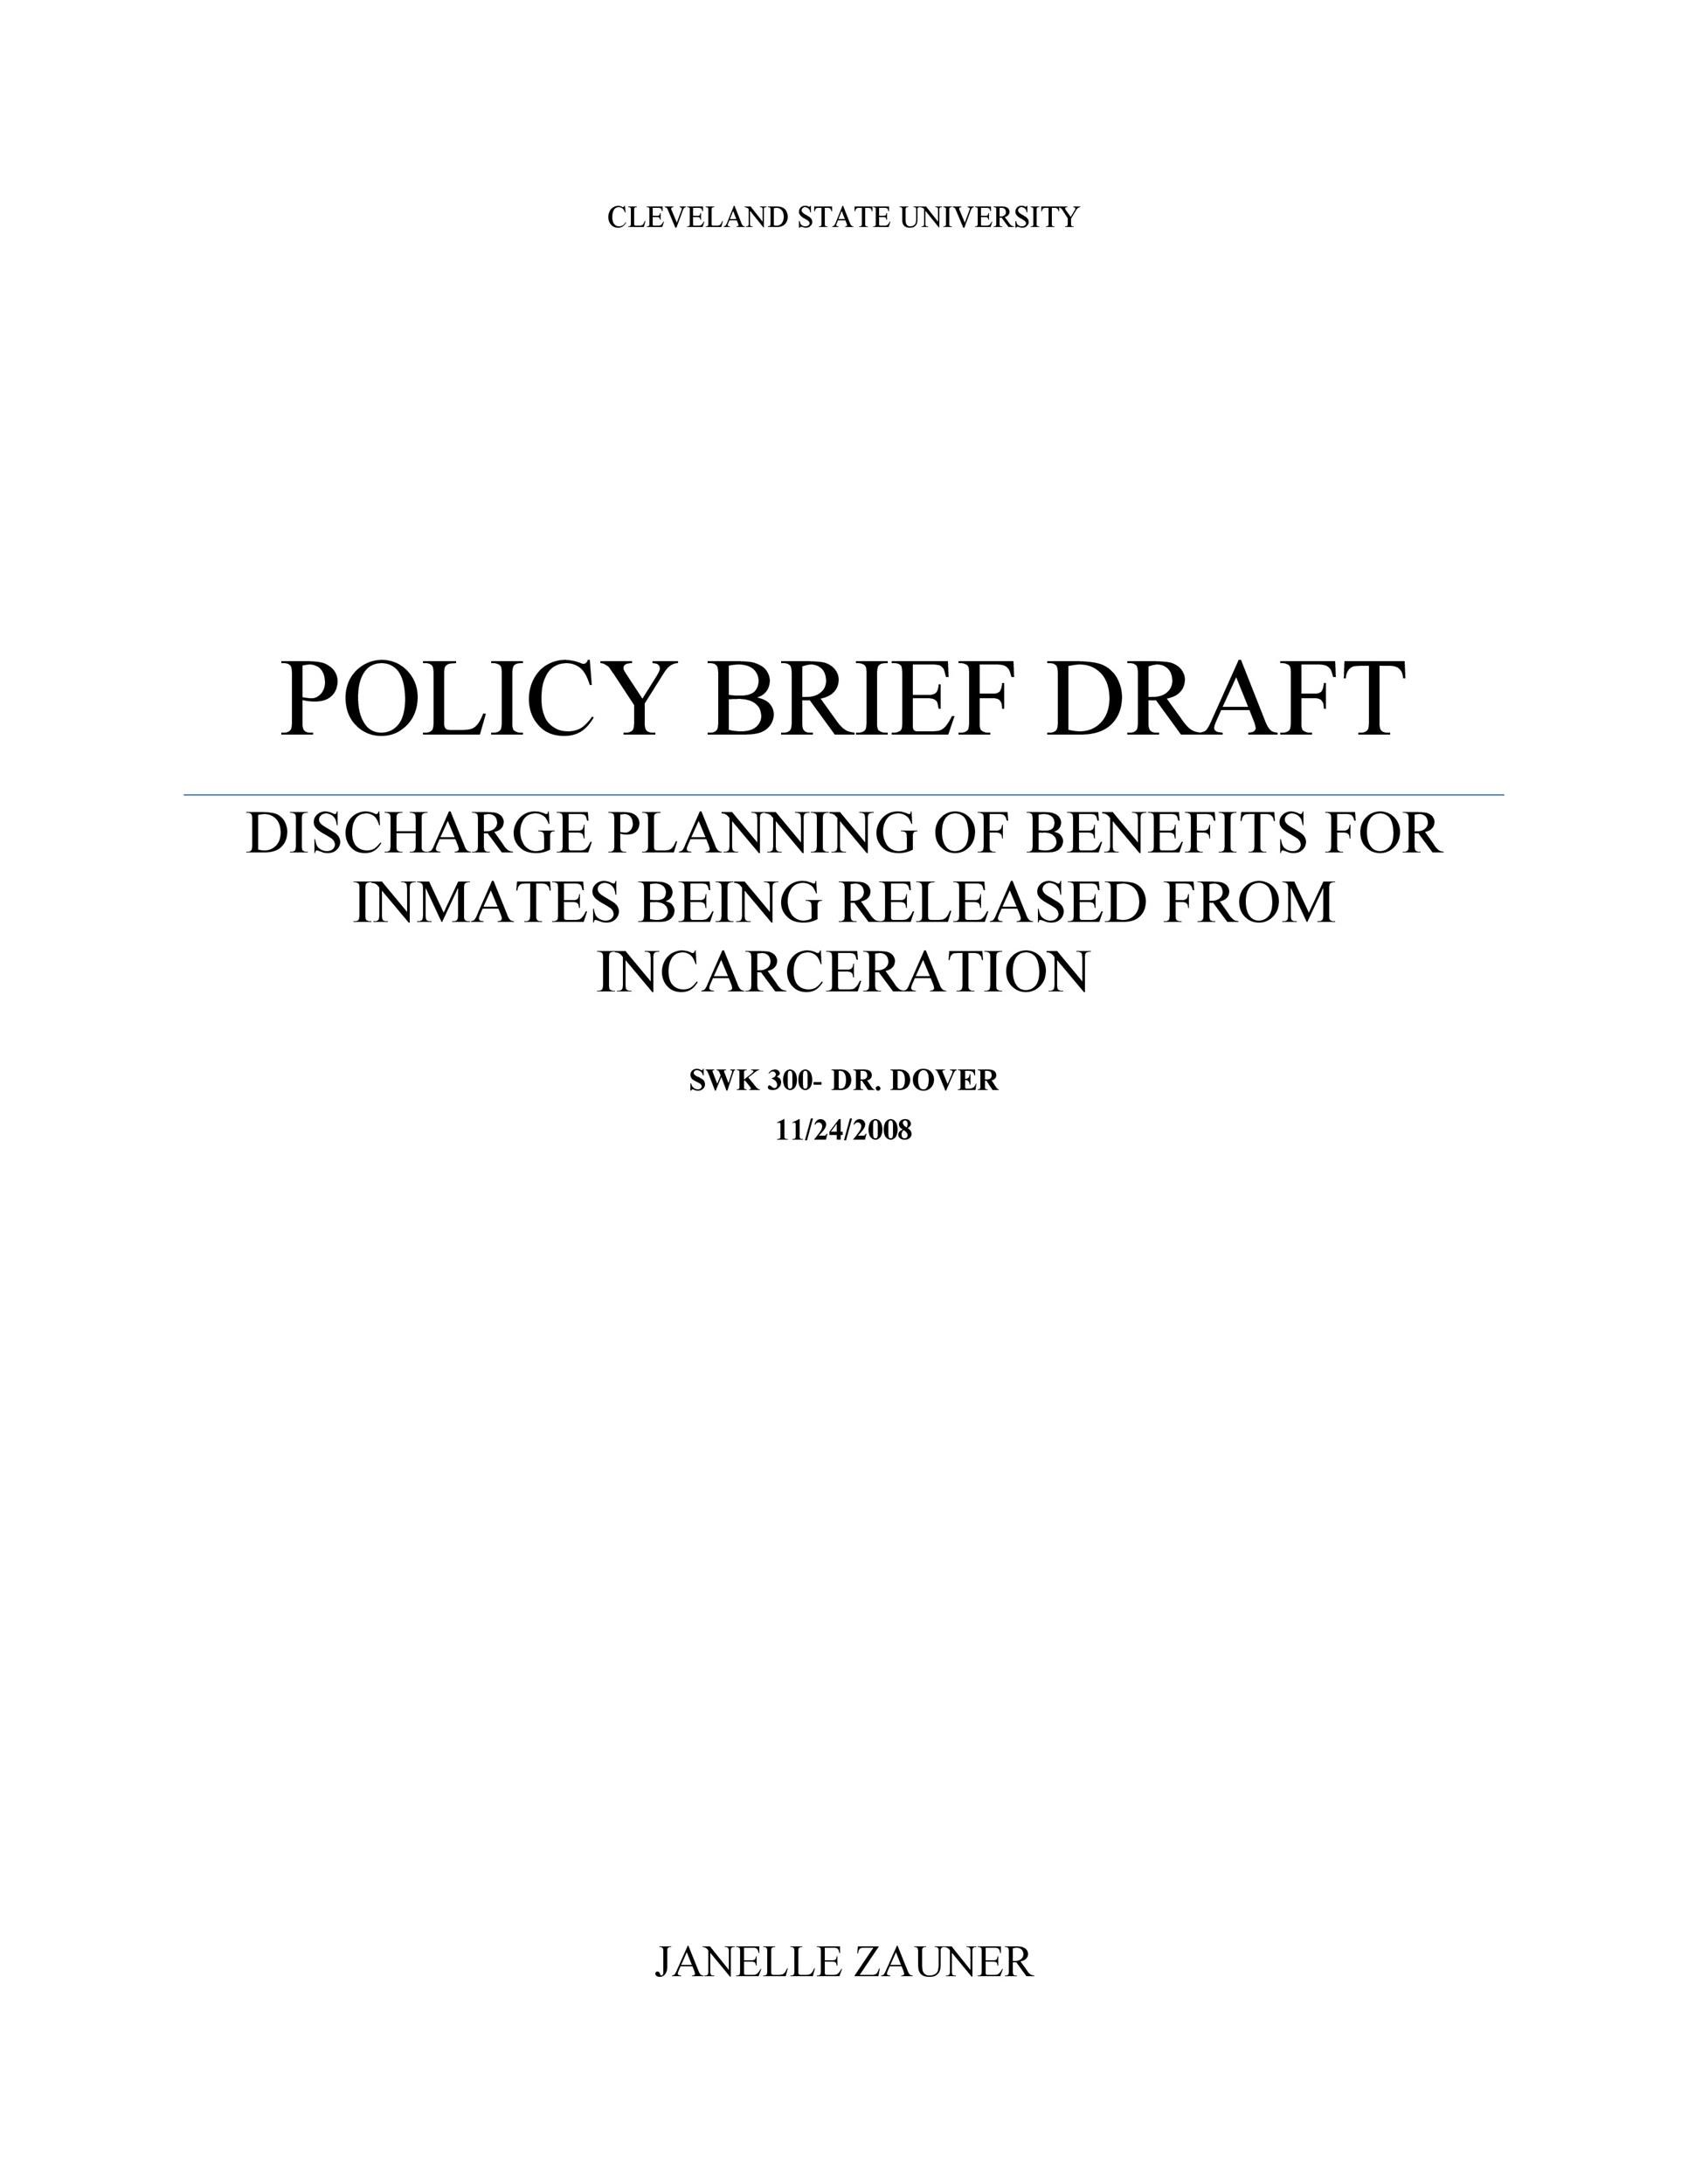 Free policy brief template 28